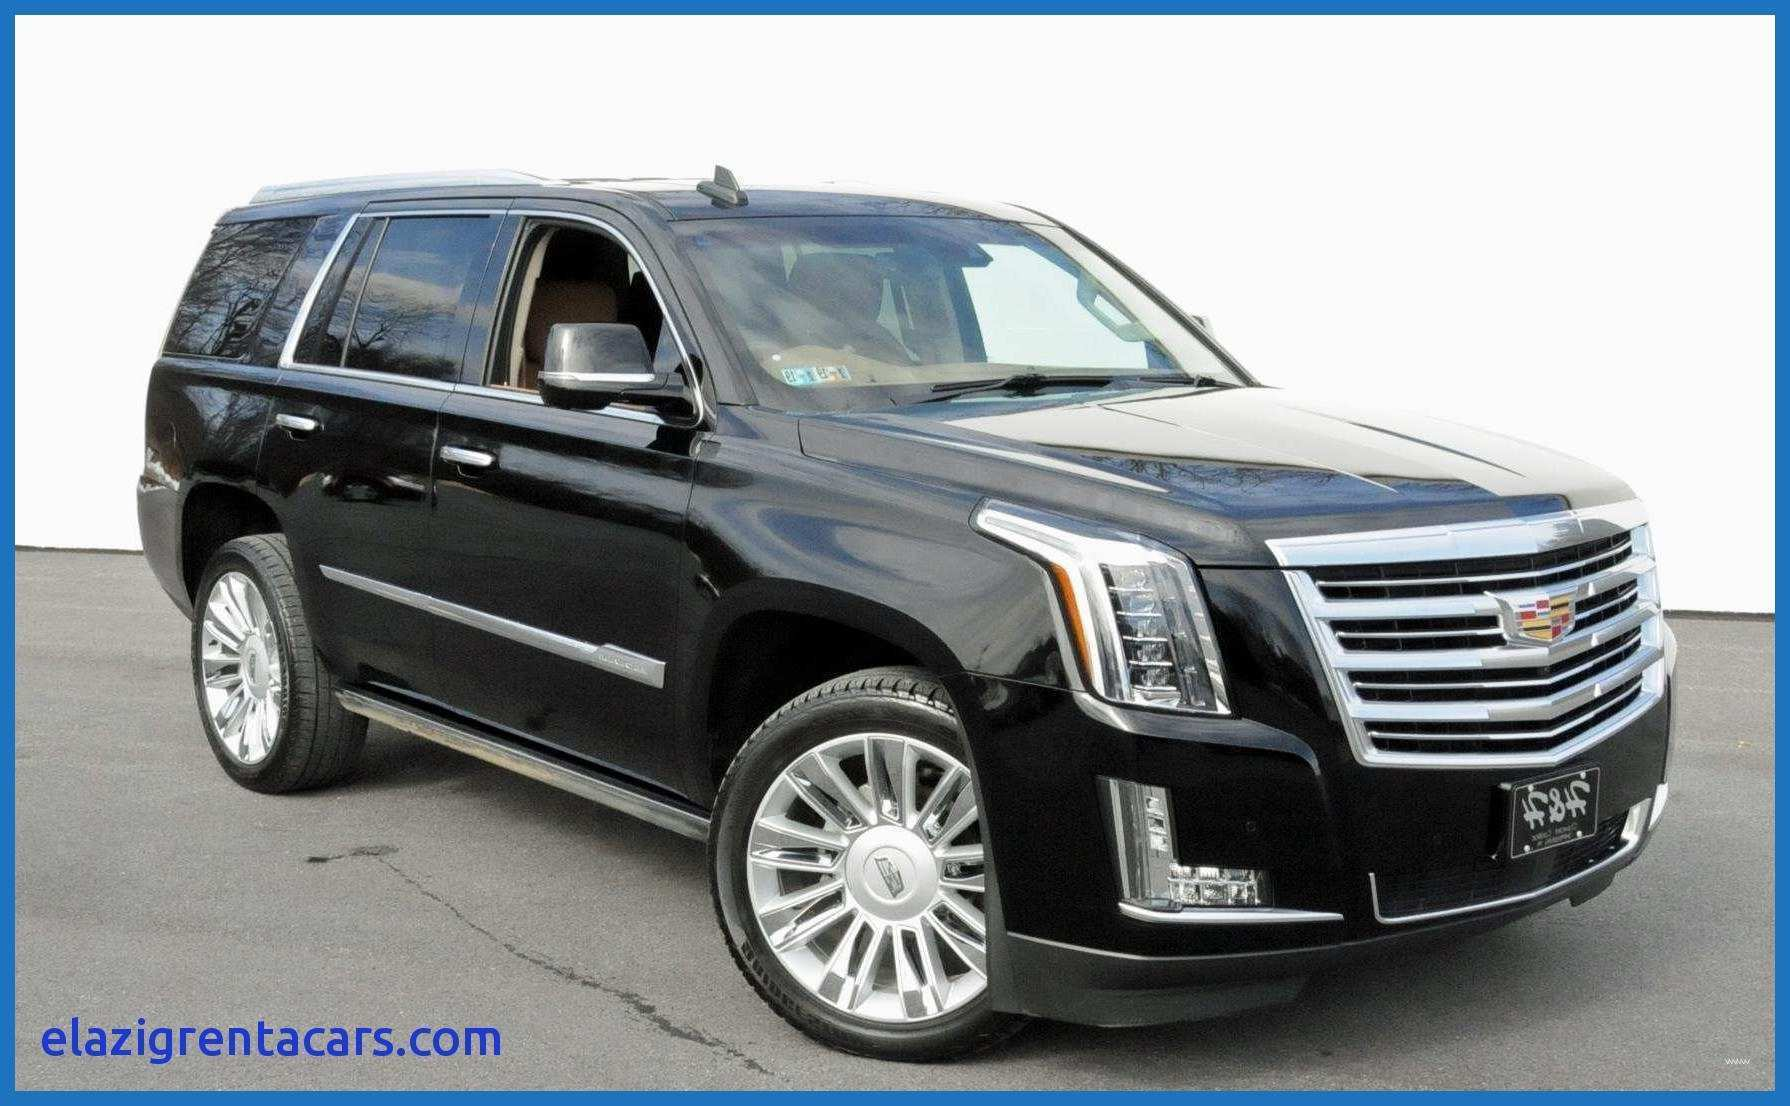 85 Great 2020 Cadillac Escalade V Ext Esv Pricing for 2020 Cadillac Escalade V Ext Esv